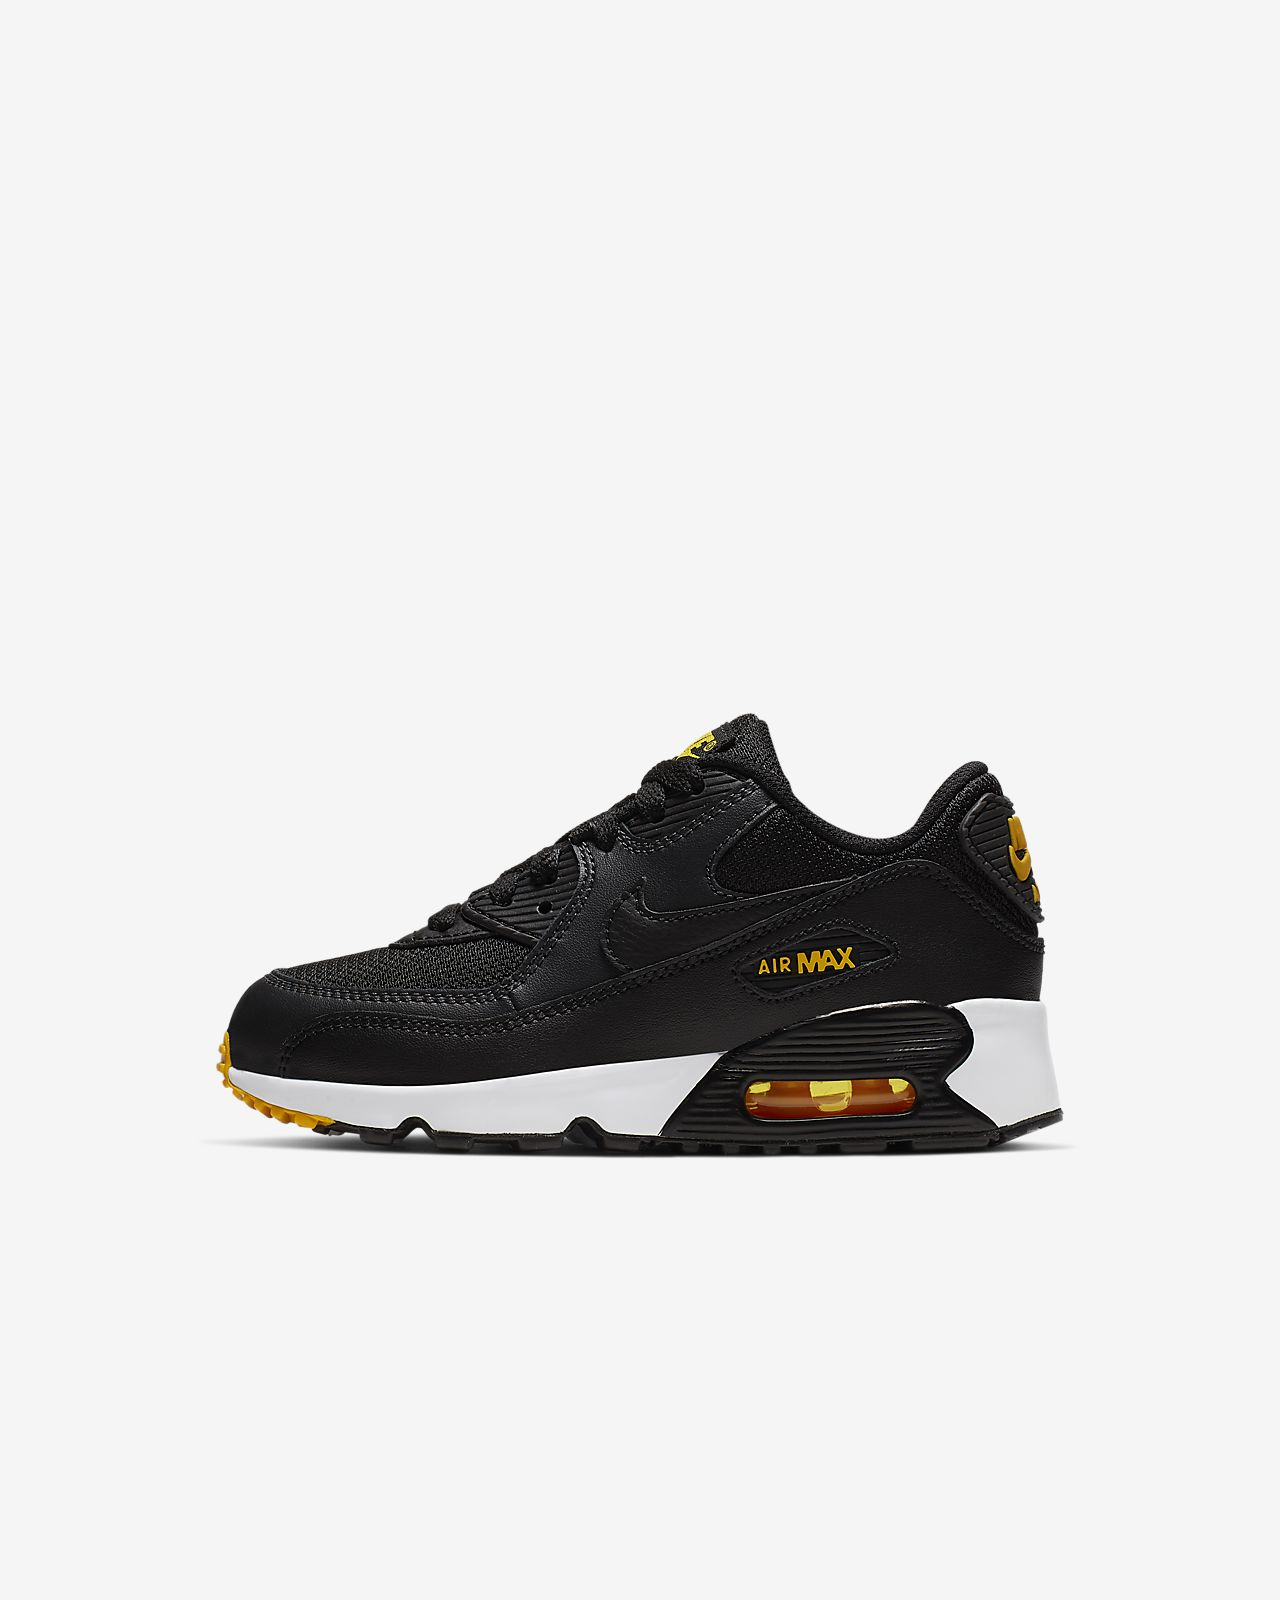 online store 1d9f7 7adcb ... Παπούτσι Nike Air Max 90 Mesh για μικρά παιδιά (27,5-35)